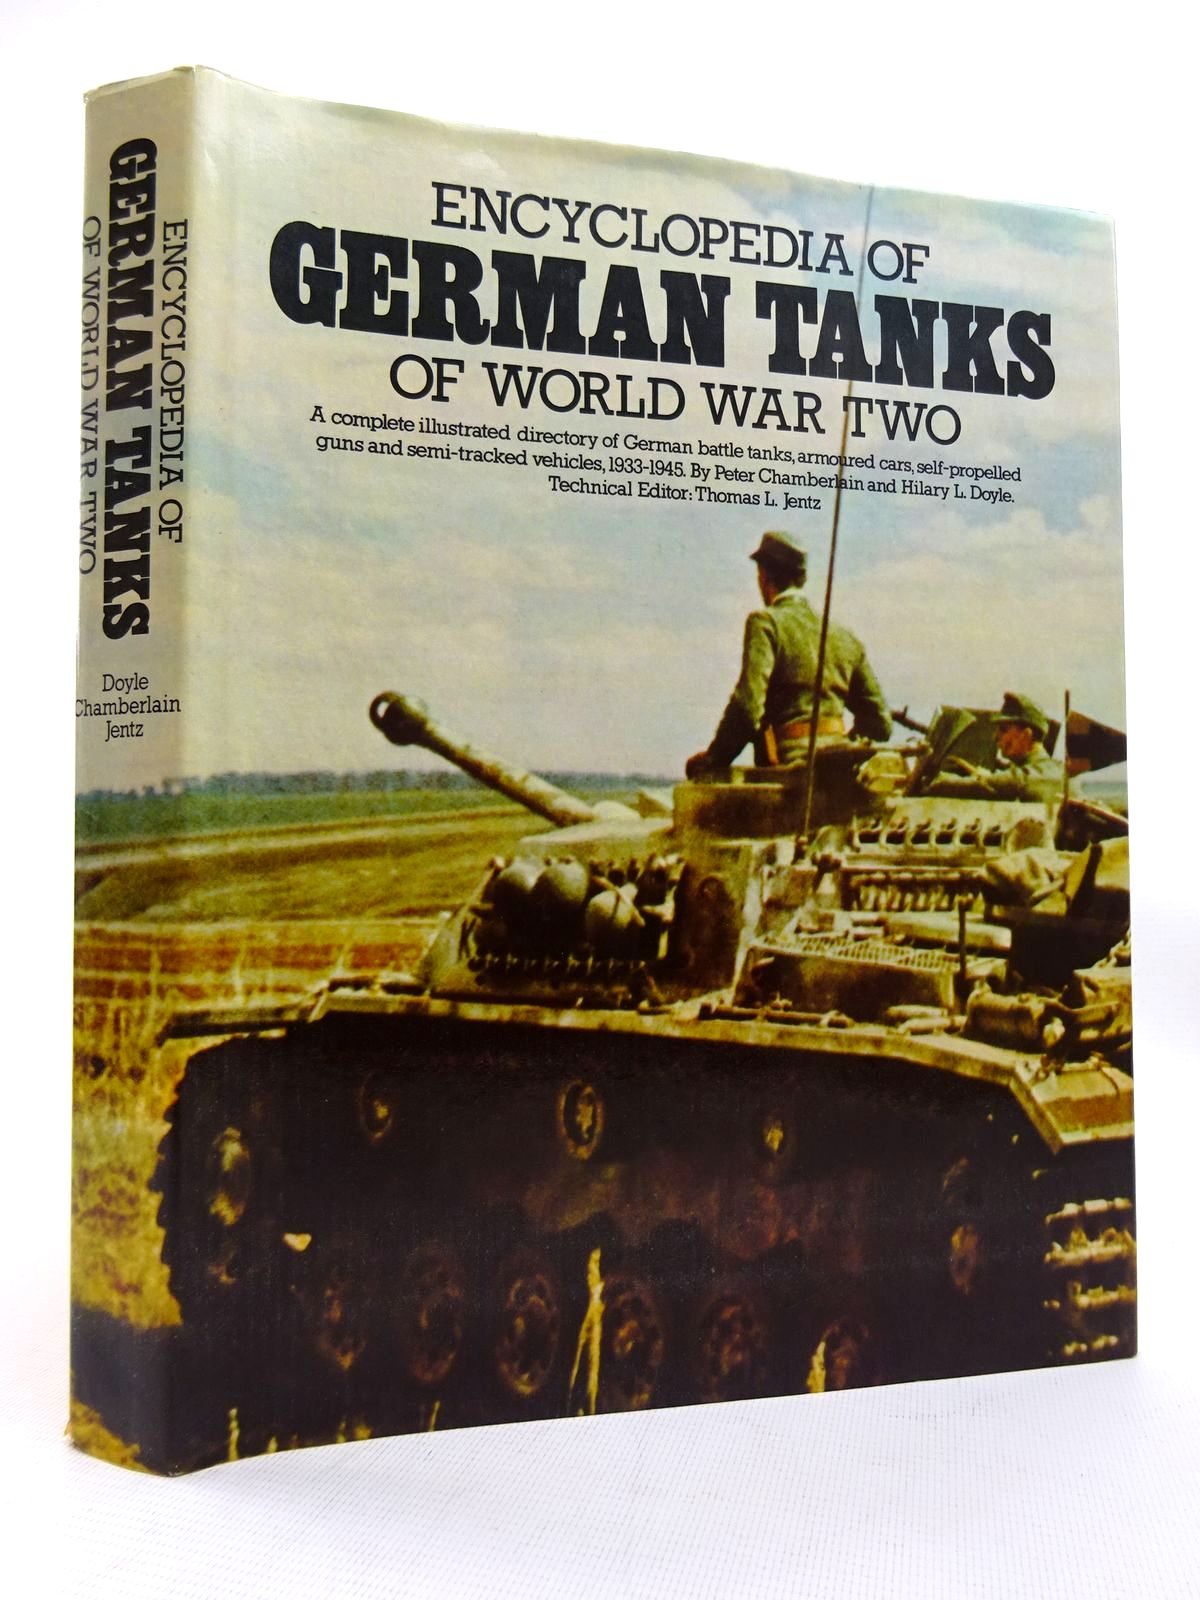 Photo of ENCYCLOPEDIA OF GERMAN TANKS OF WORLD WAR TWO written by Chamberlain, Peter<br />Doyle, Hilary<br />Jentz, Thomas published by Arms &amp; Armour Press (STOCK CODE: 1816096)  for sale by Stella & Rose's Books